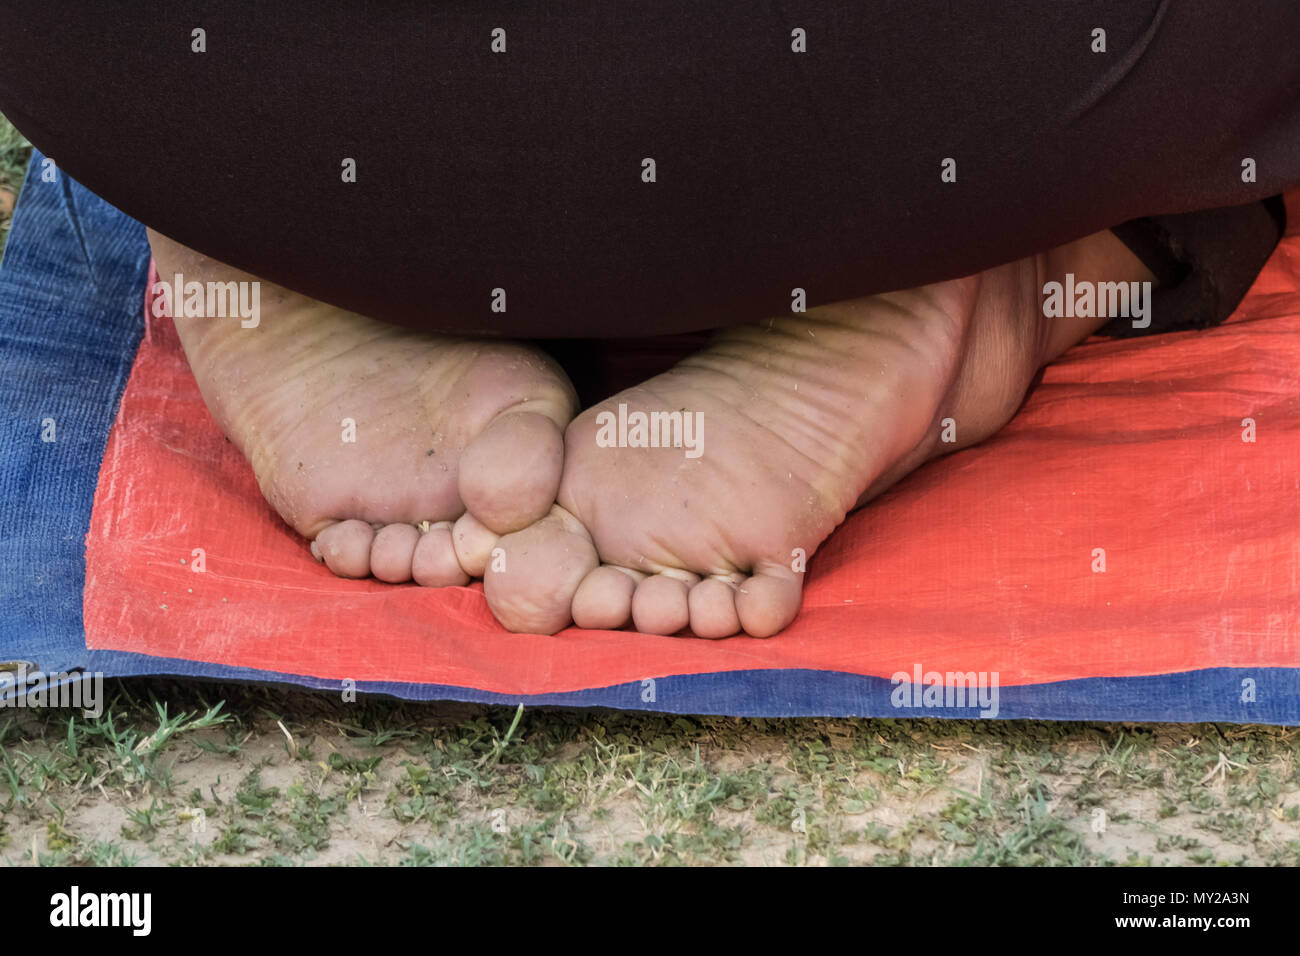 Close-up view of the bare feet of a kneeling worshipper - Stock Image